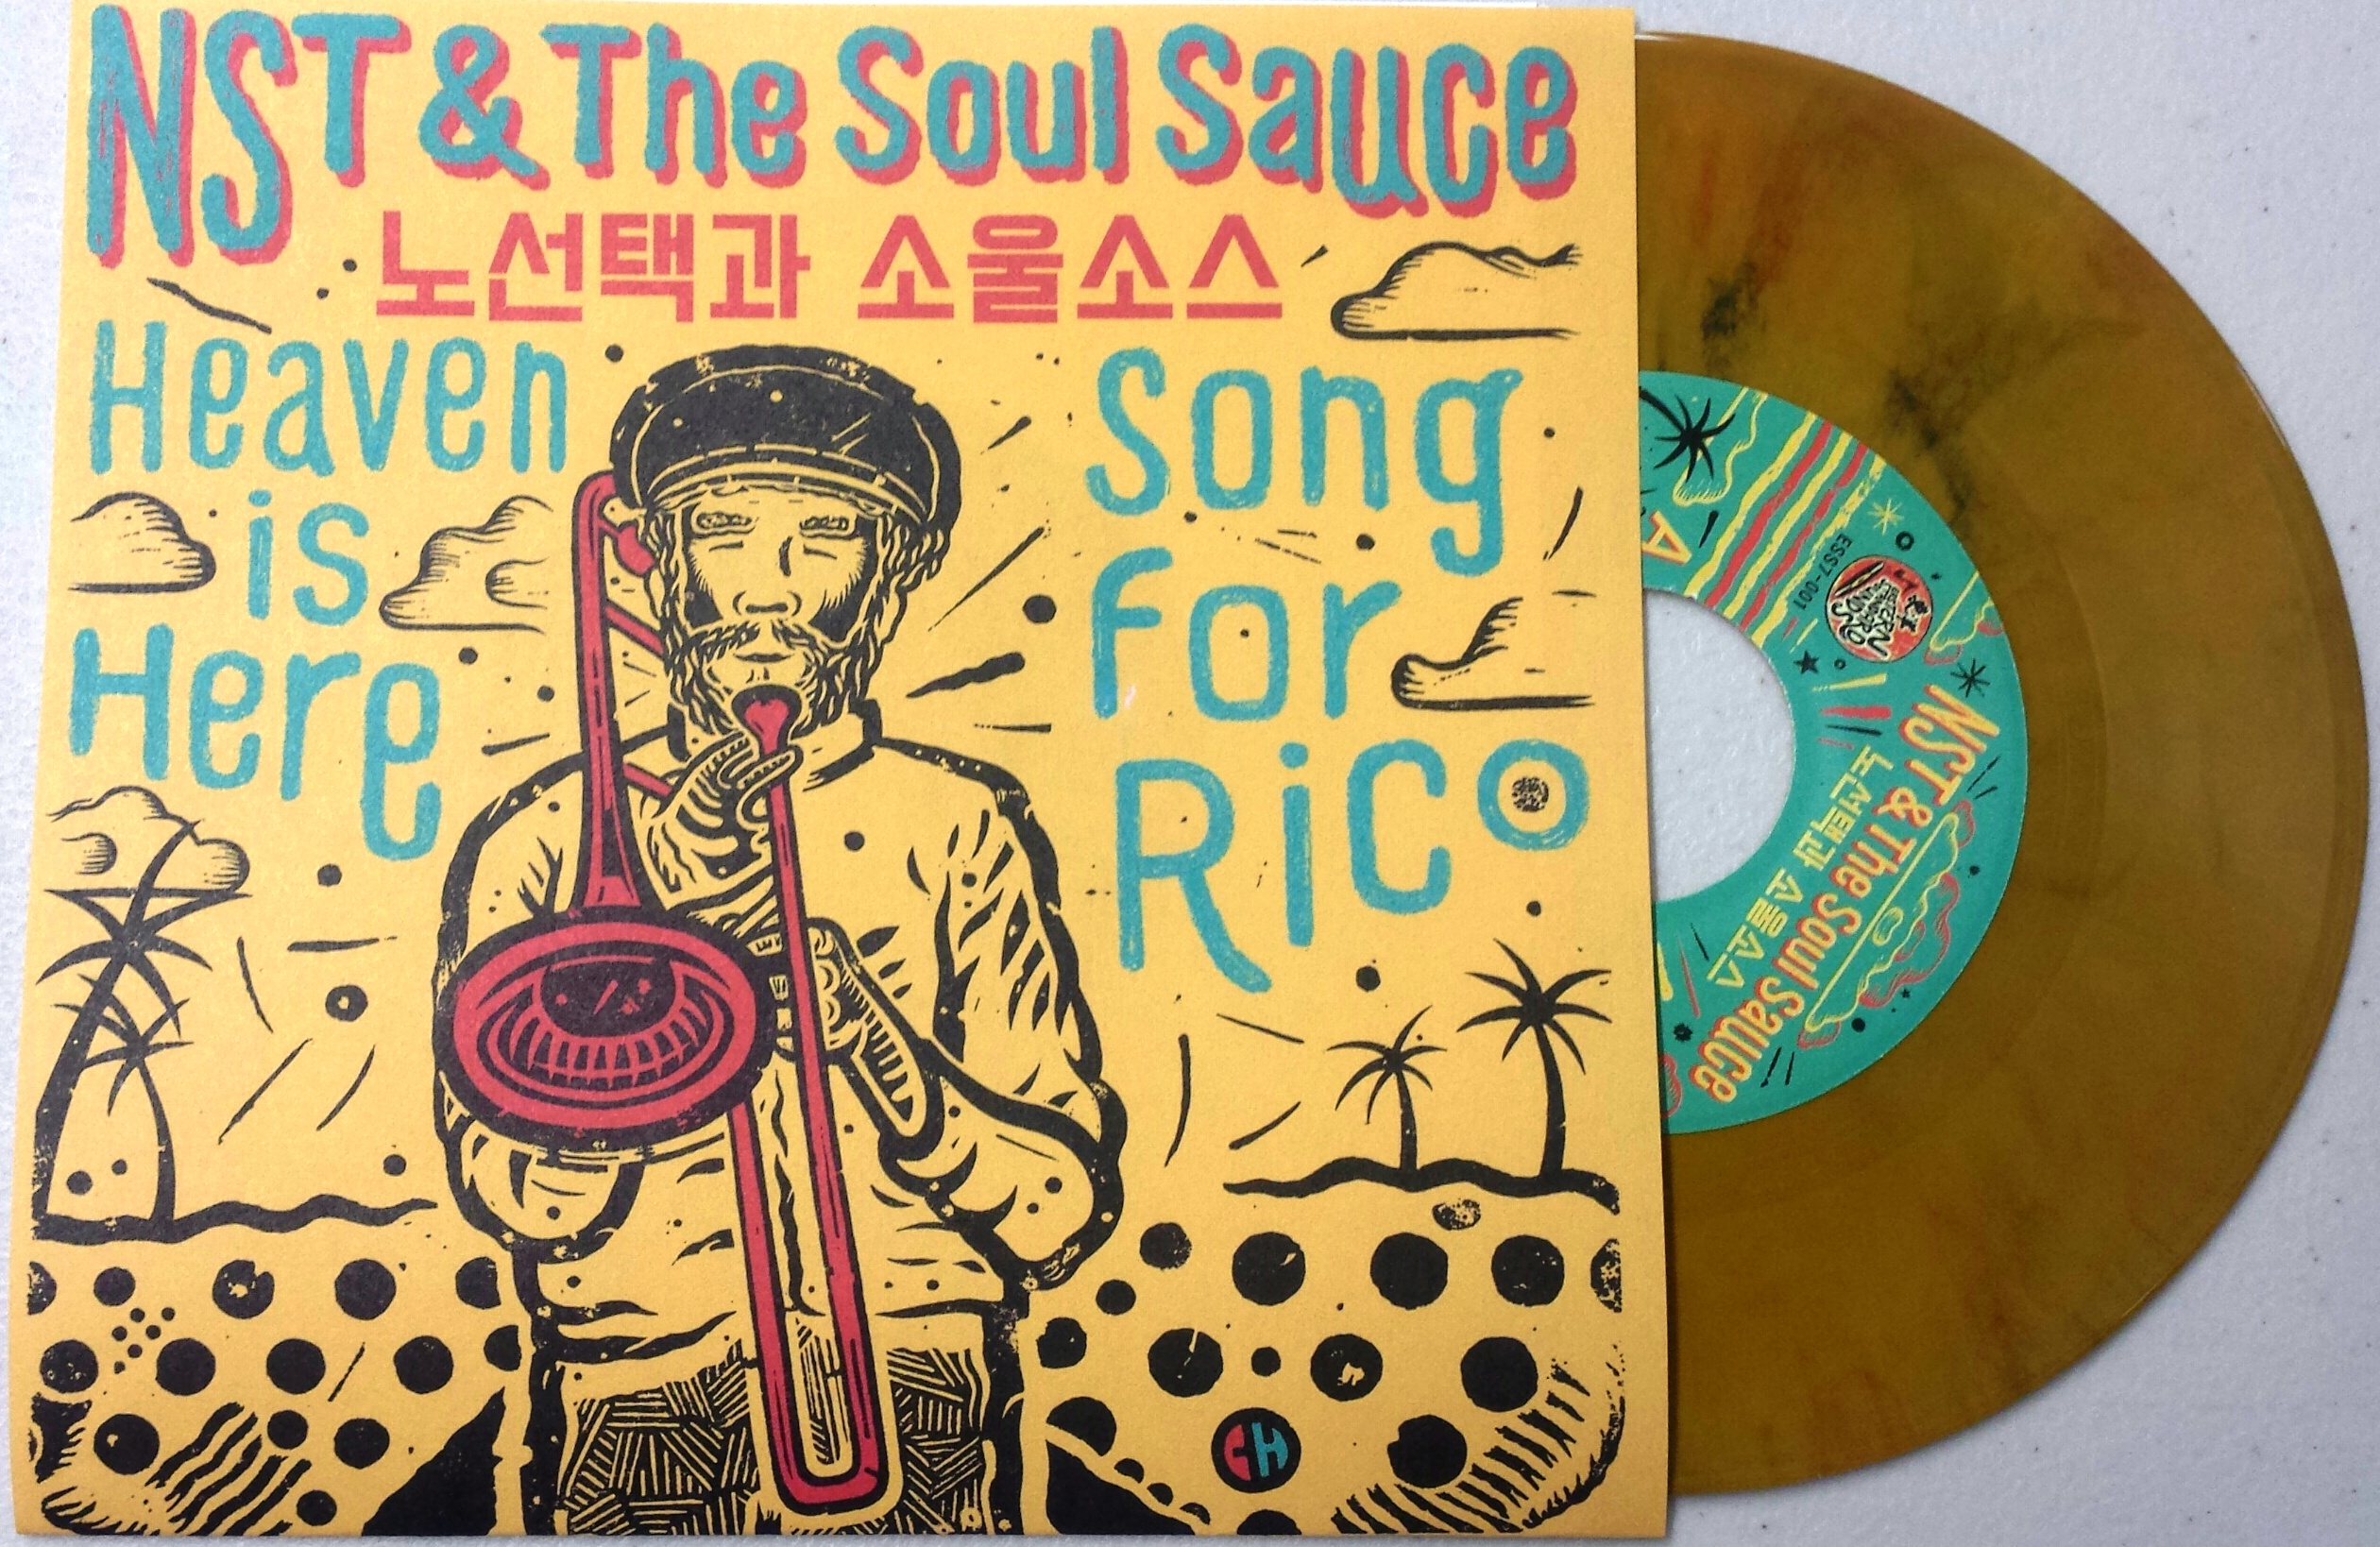 NST & The Soul Sauce/SONG FOR RICO 7""